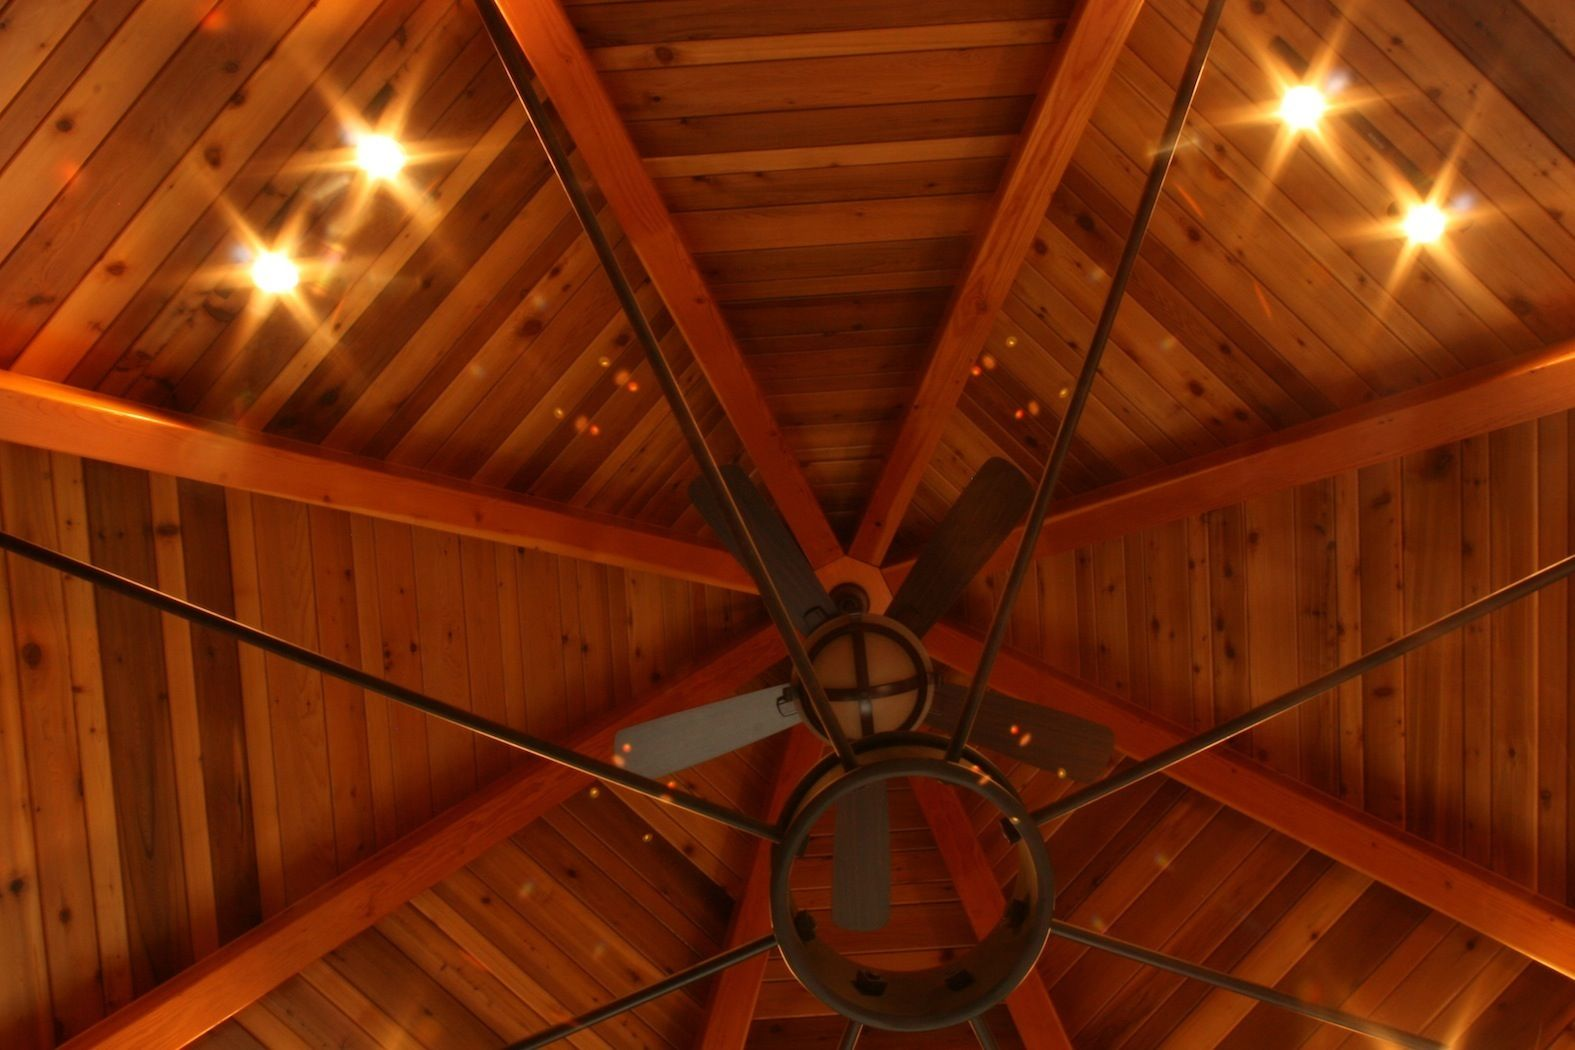 This Picture Is Actually Of A Sunroom Ceiling In A Custom Home We Built The Beams Are Doug Fir And The V Groove Material Is Made Of Ced Dream Home Pinte